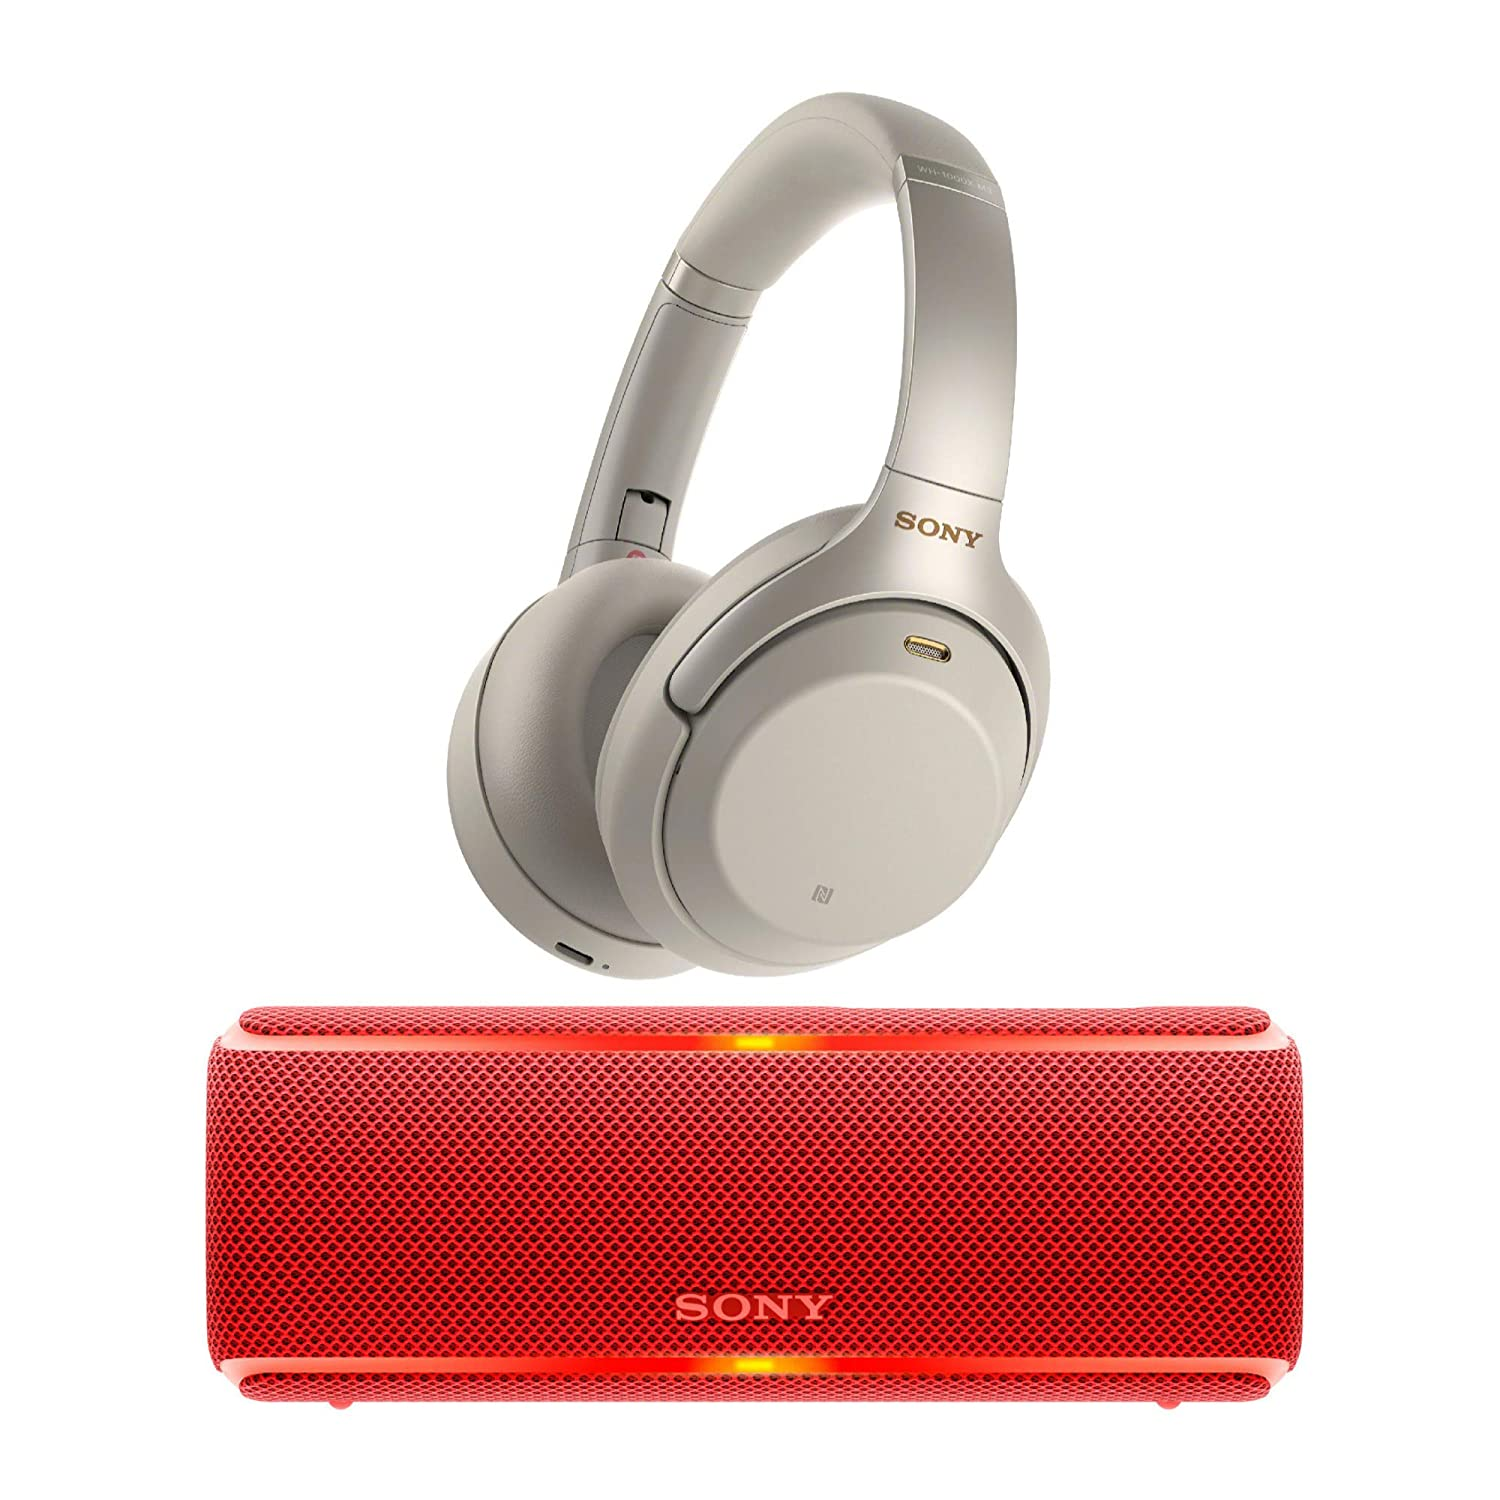 Sony WH1000XM3 Wireless Noise Canceling Over Ear Headphones (Silver) Portable Bluetooth Speaker